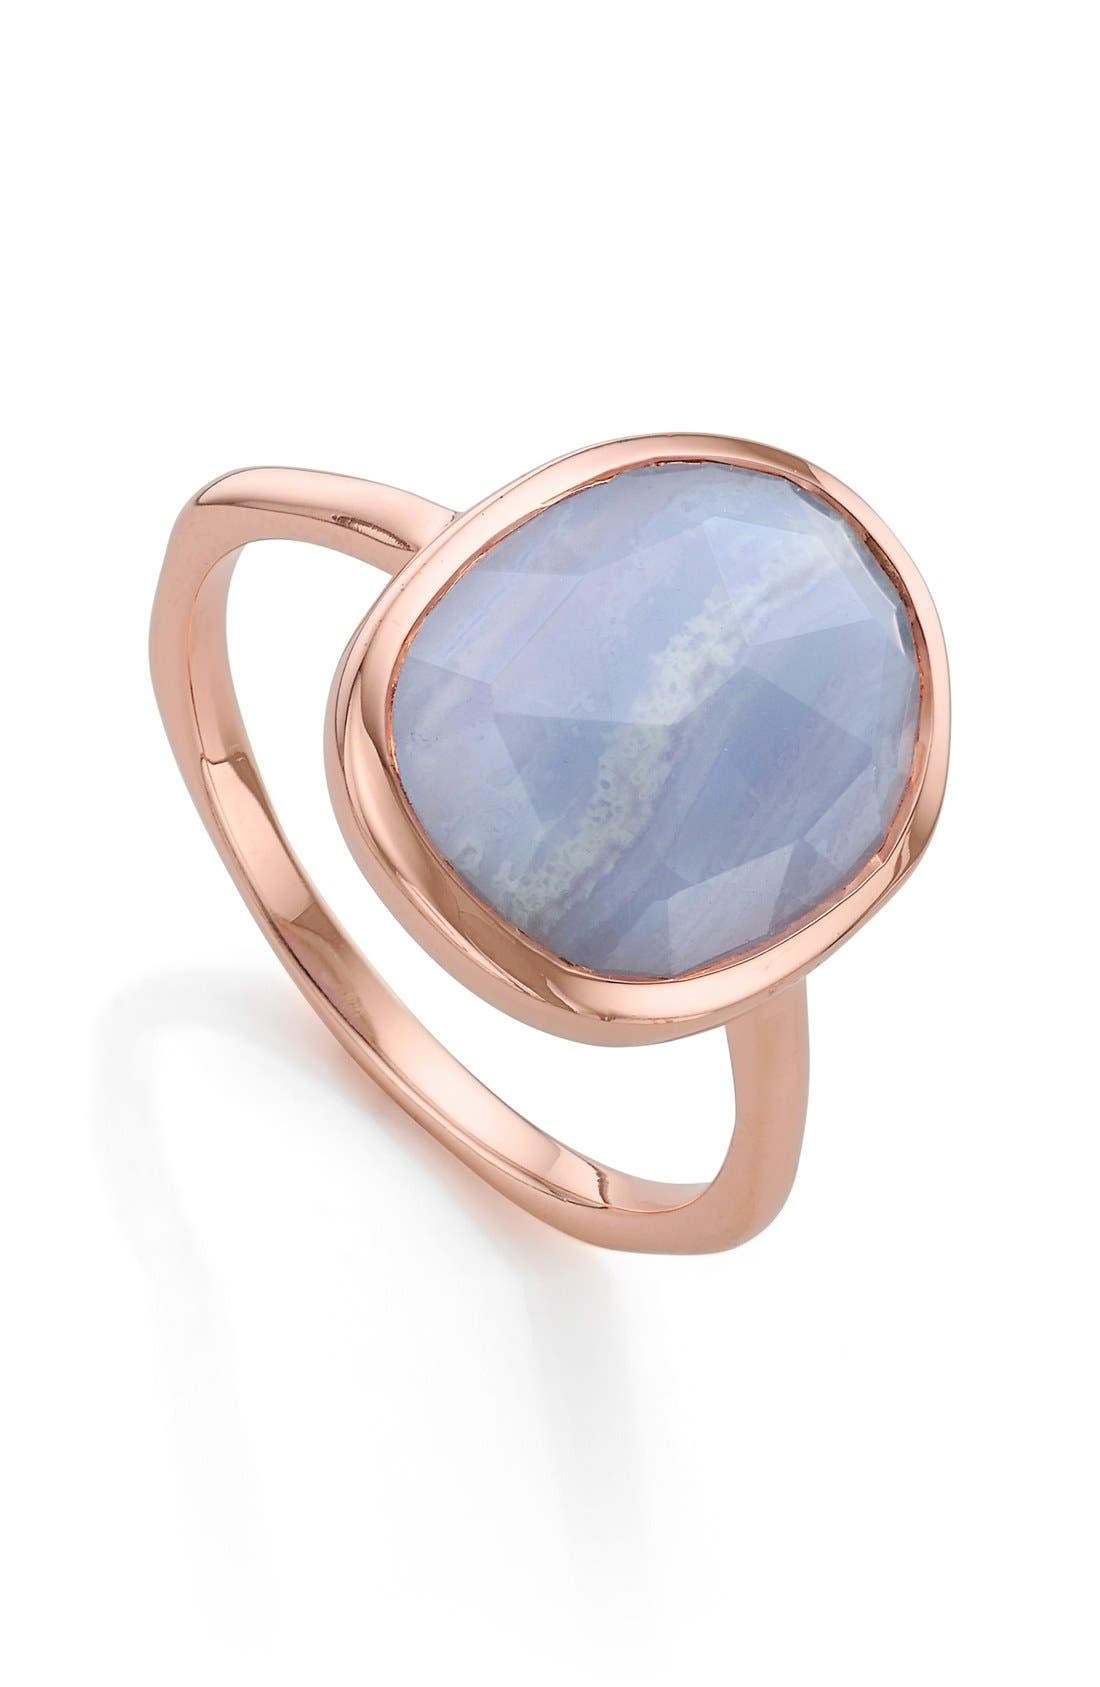 Main Image - Monica Vinader 'Siren' Medium Semiprecious Stone Stacking Ring